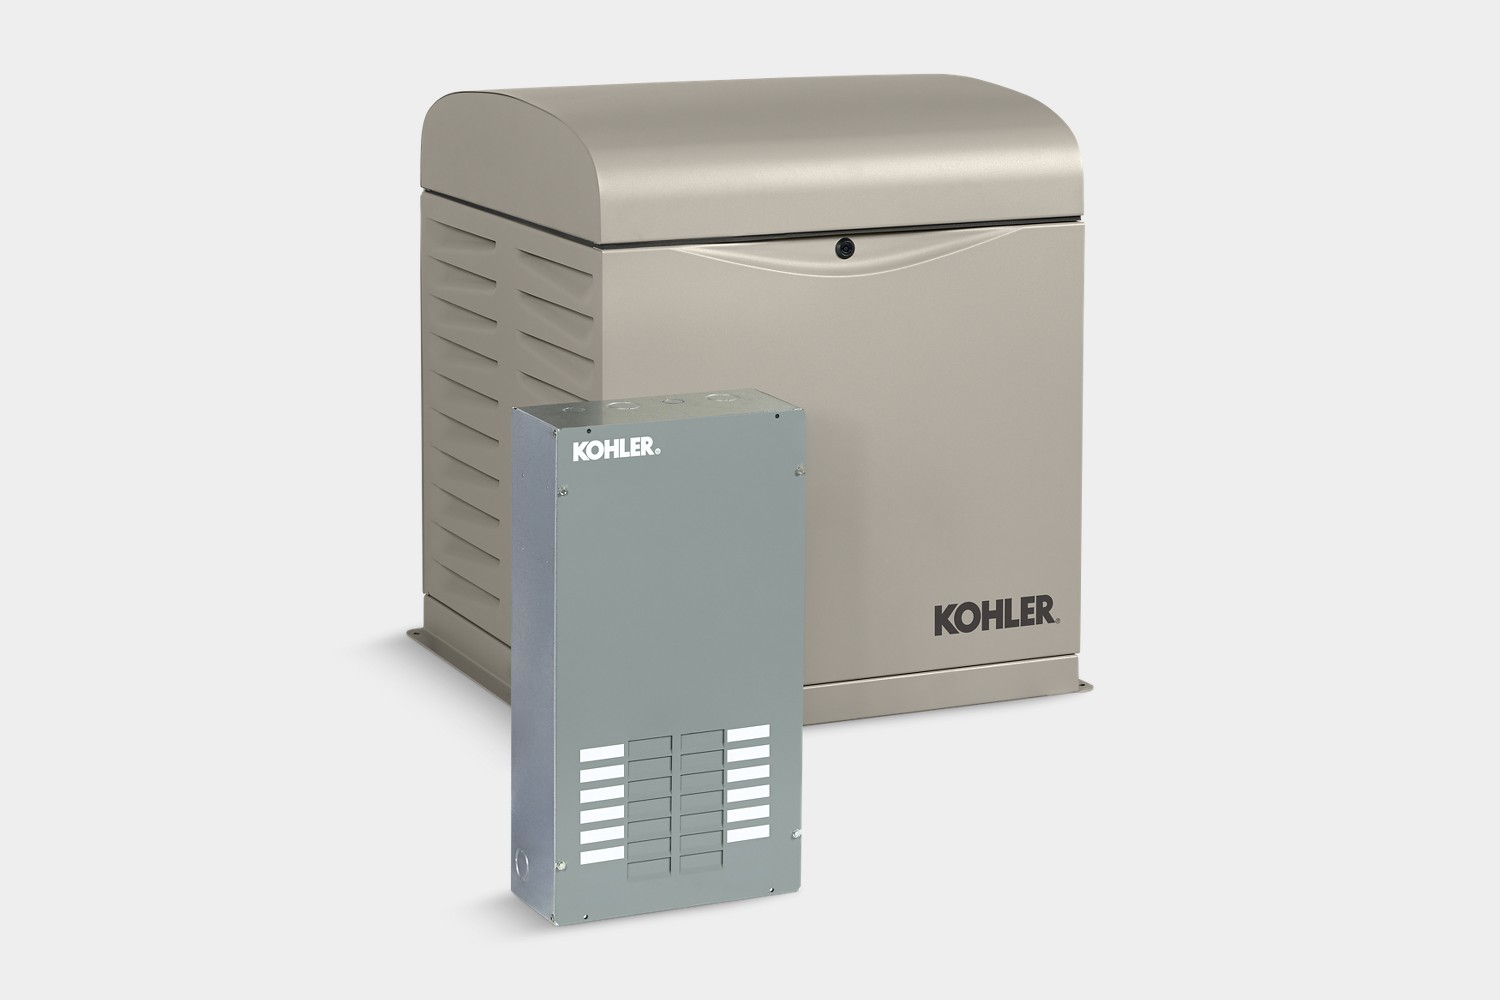 Kohler Generators 8resvl With Automatic Transfer Switch And Oncue Plus Generators Products Home Generators